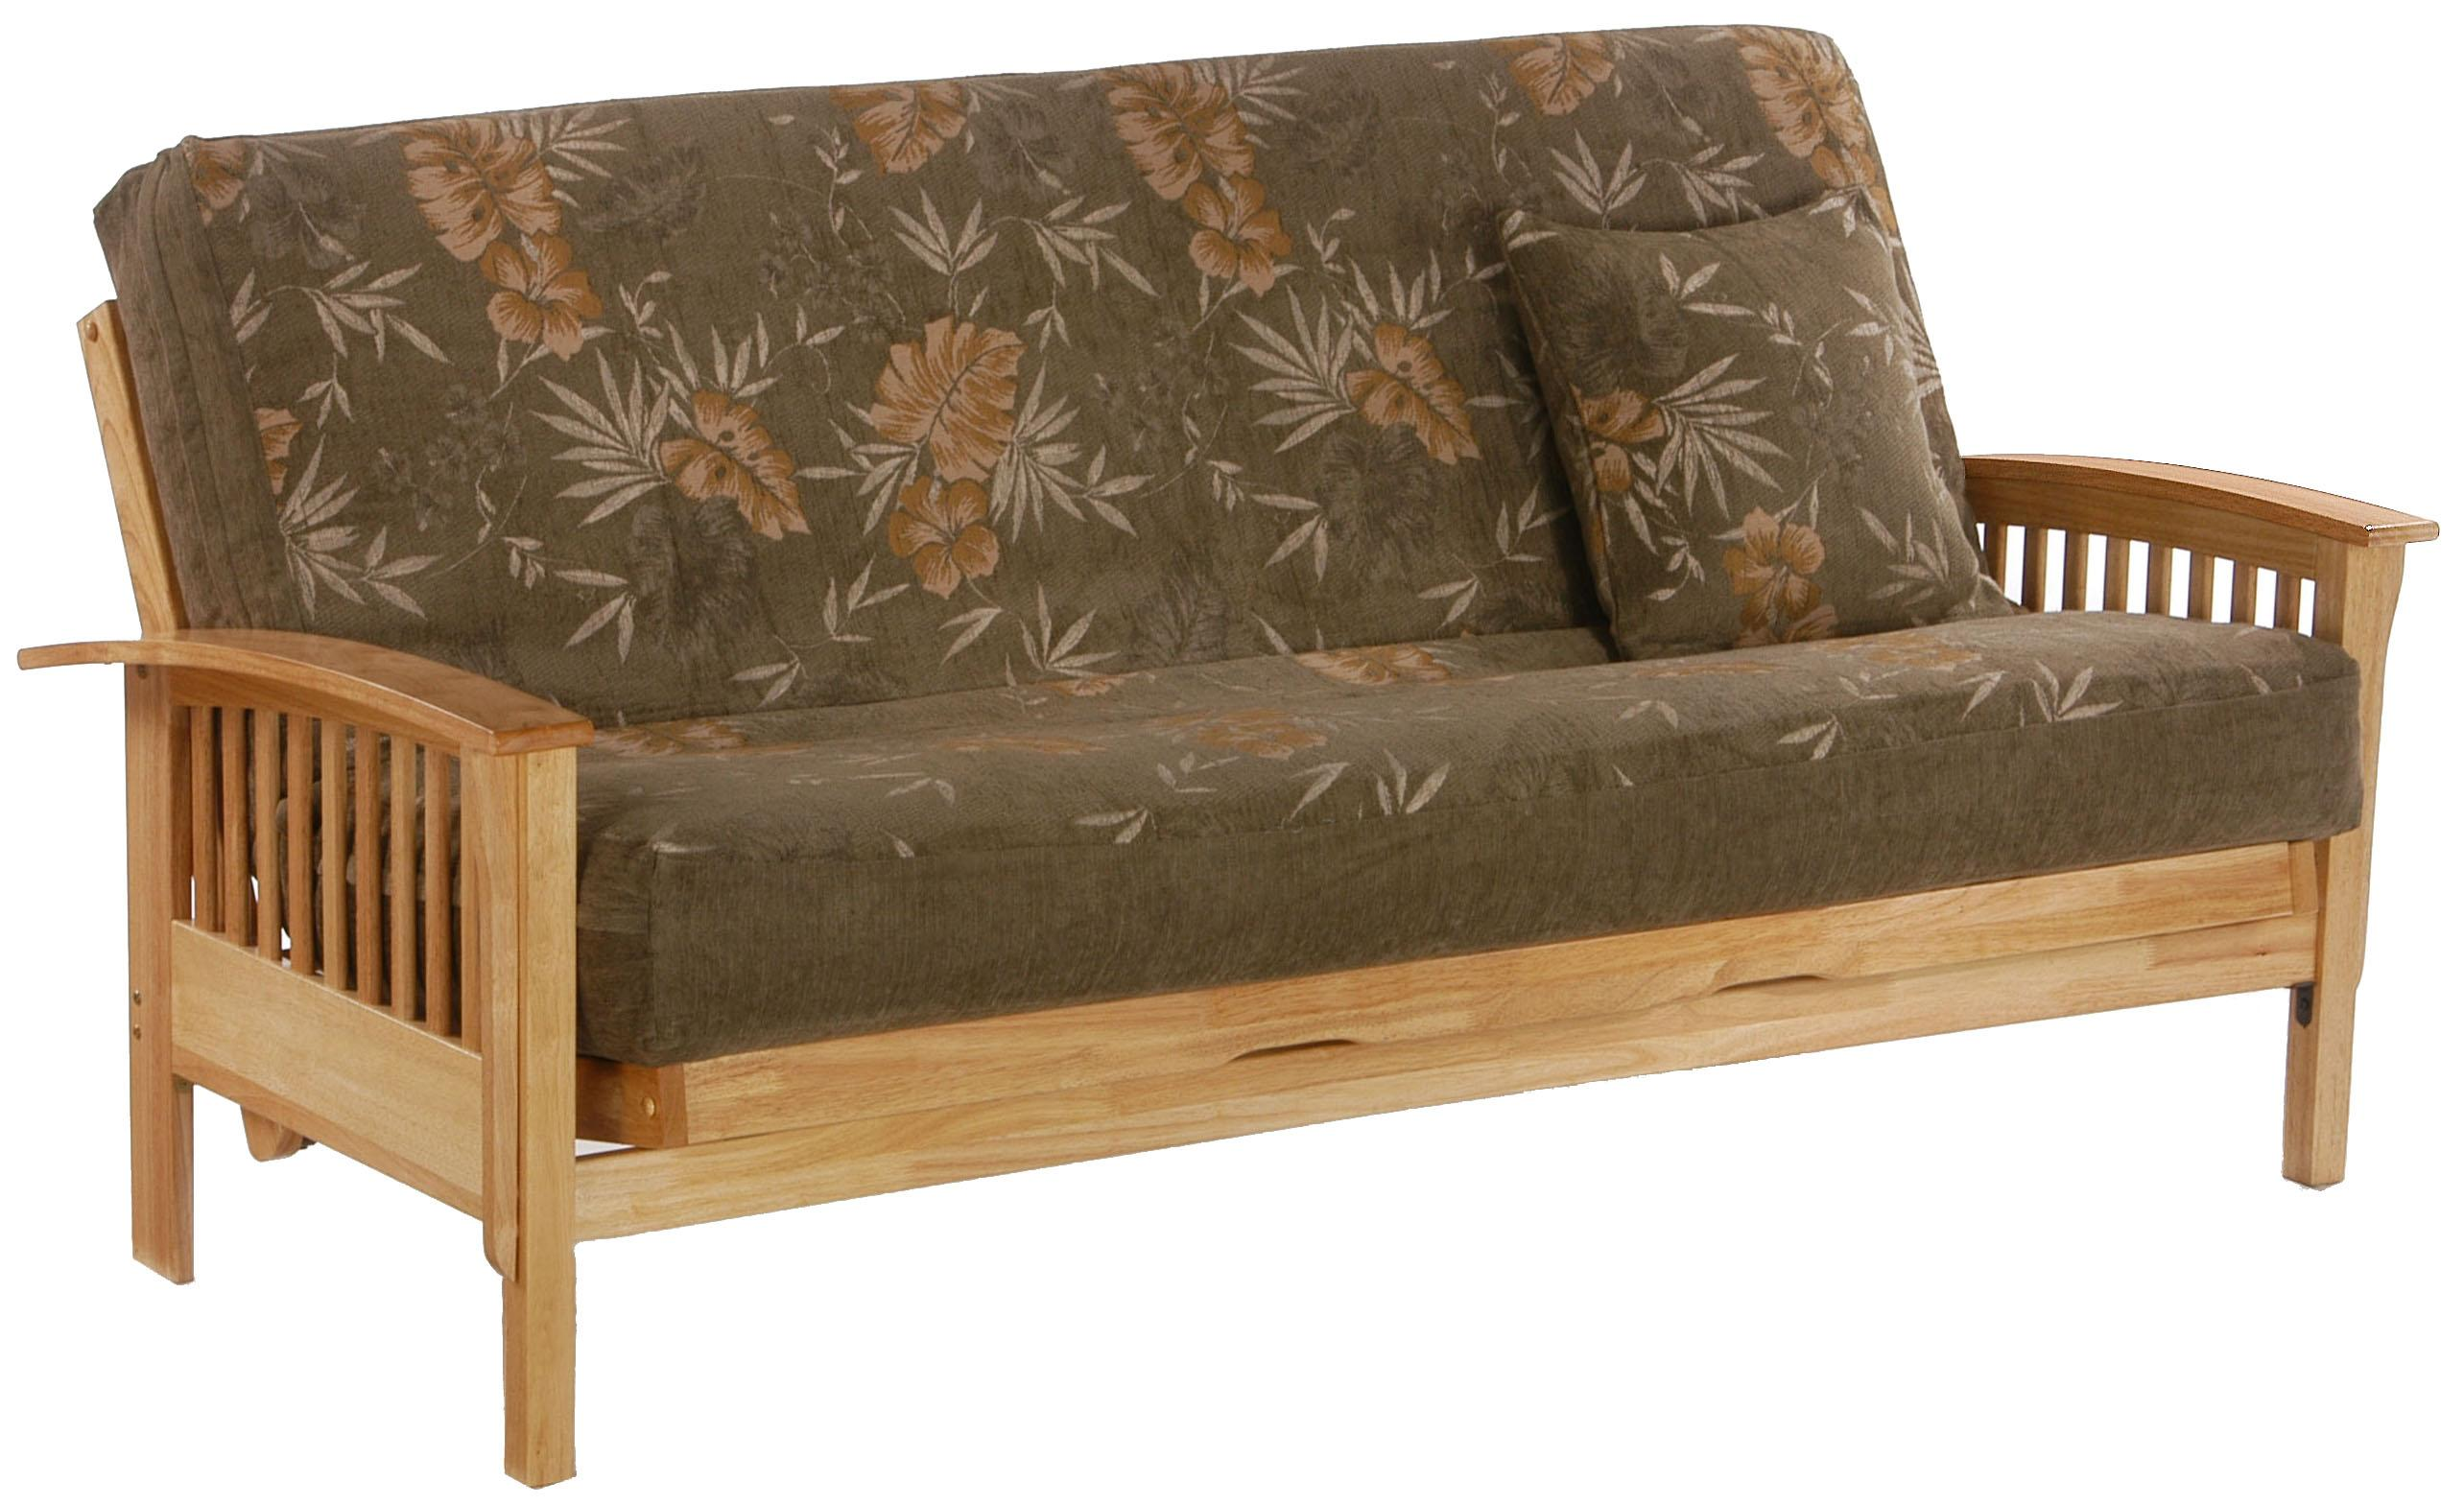 Winchester Natural Chair Size Futon by Night & Day Furniture at Furniture and ApplianceMart